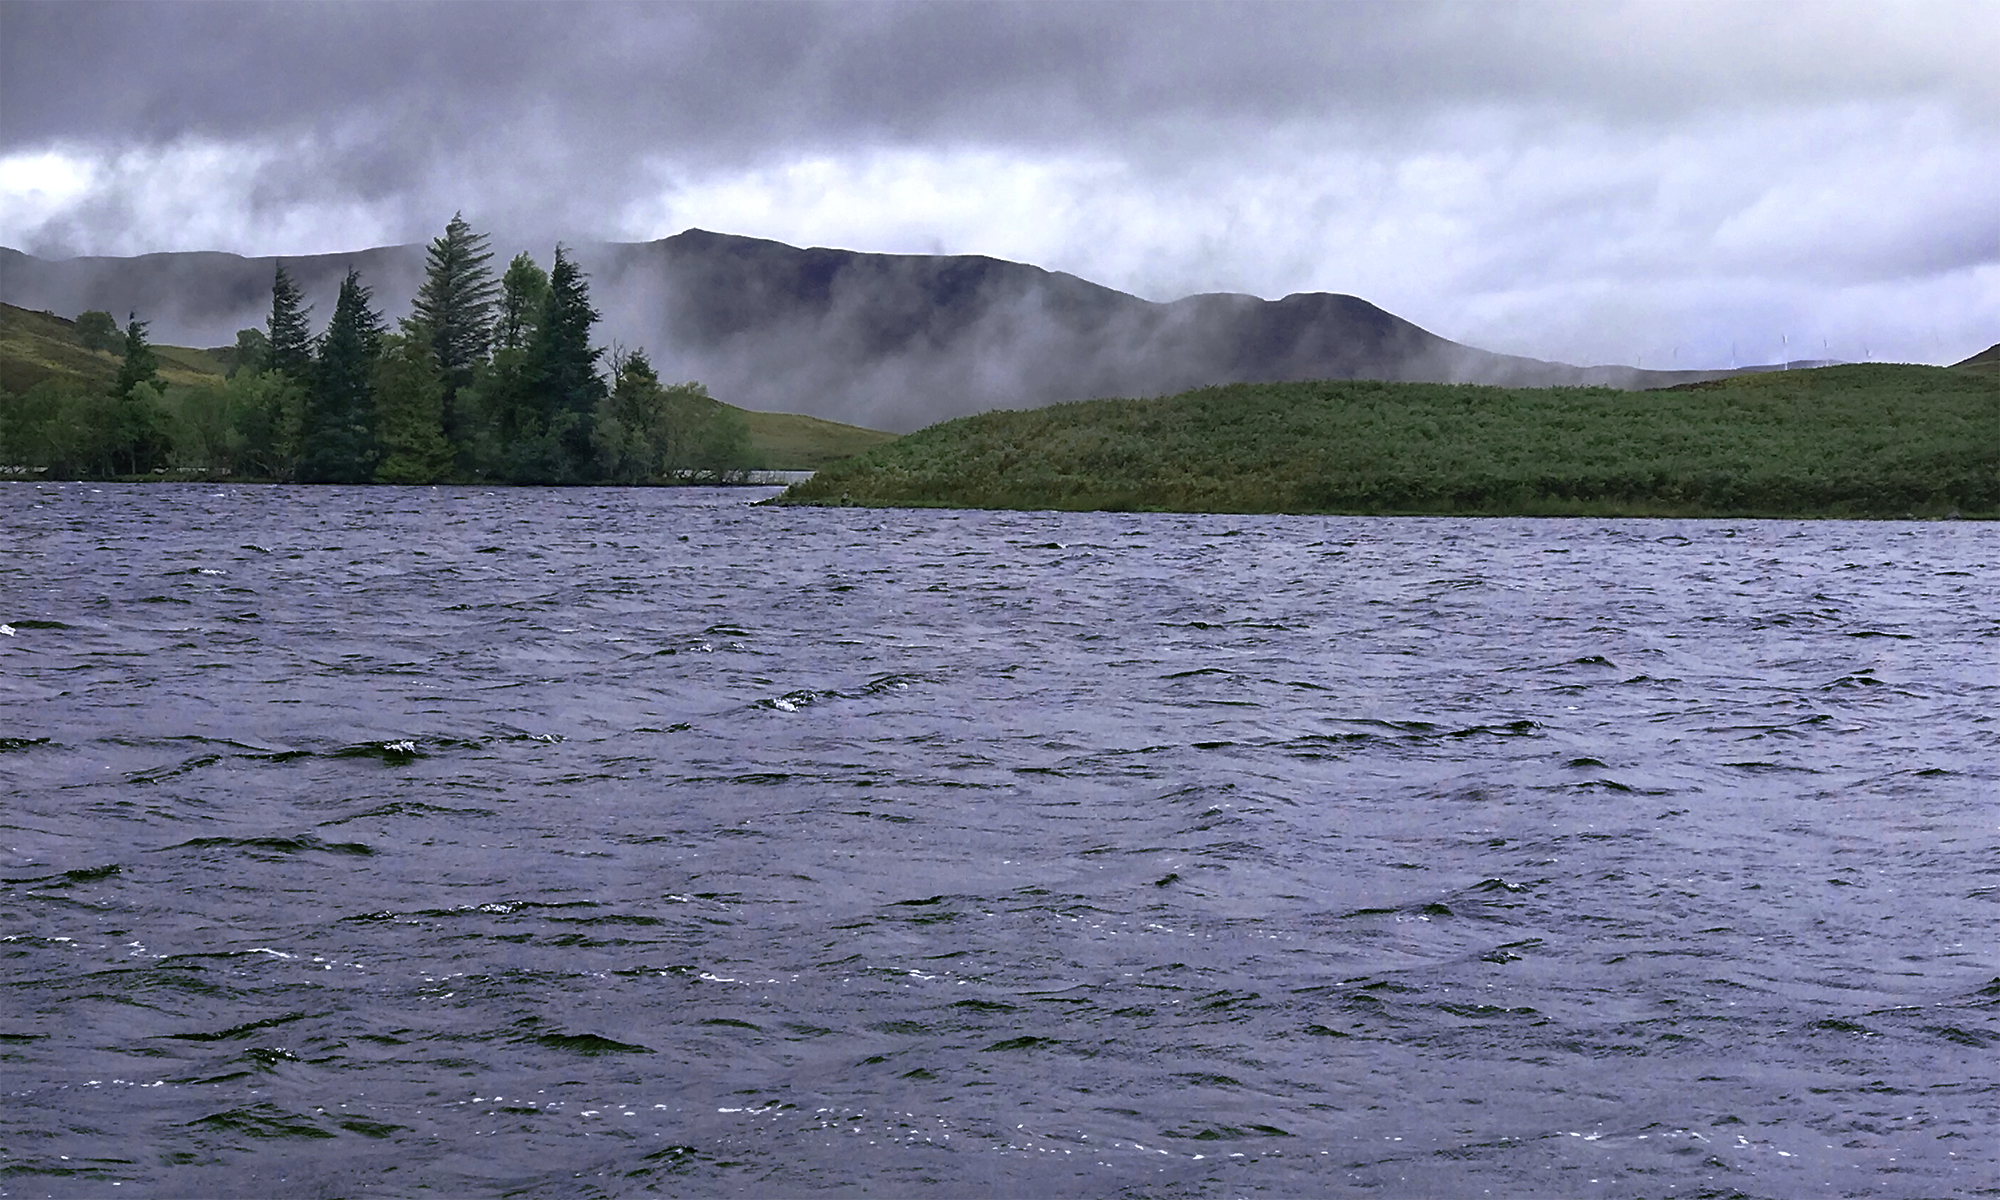 Photo of a loch and small islands shrouded in mist below mountains on a cloudy day